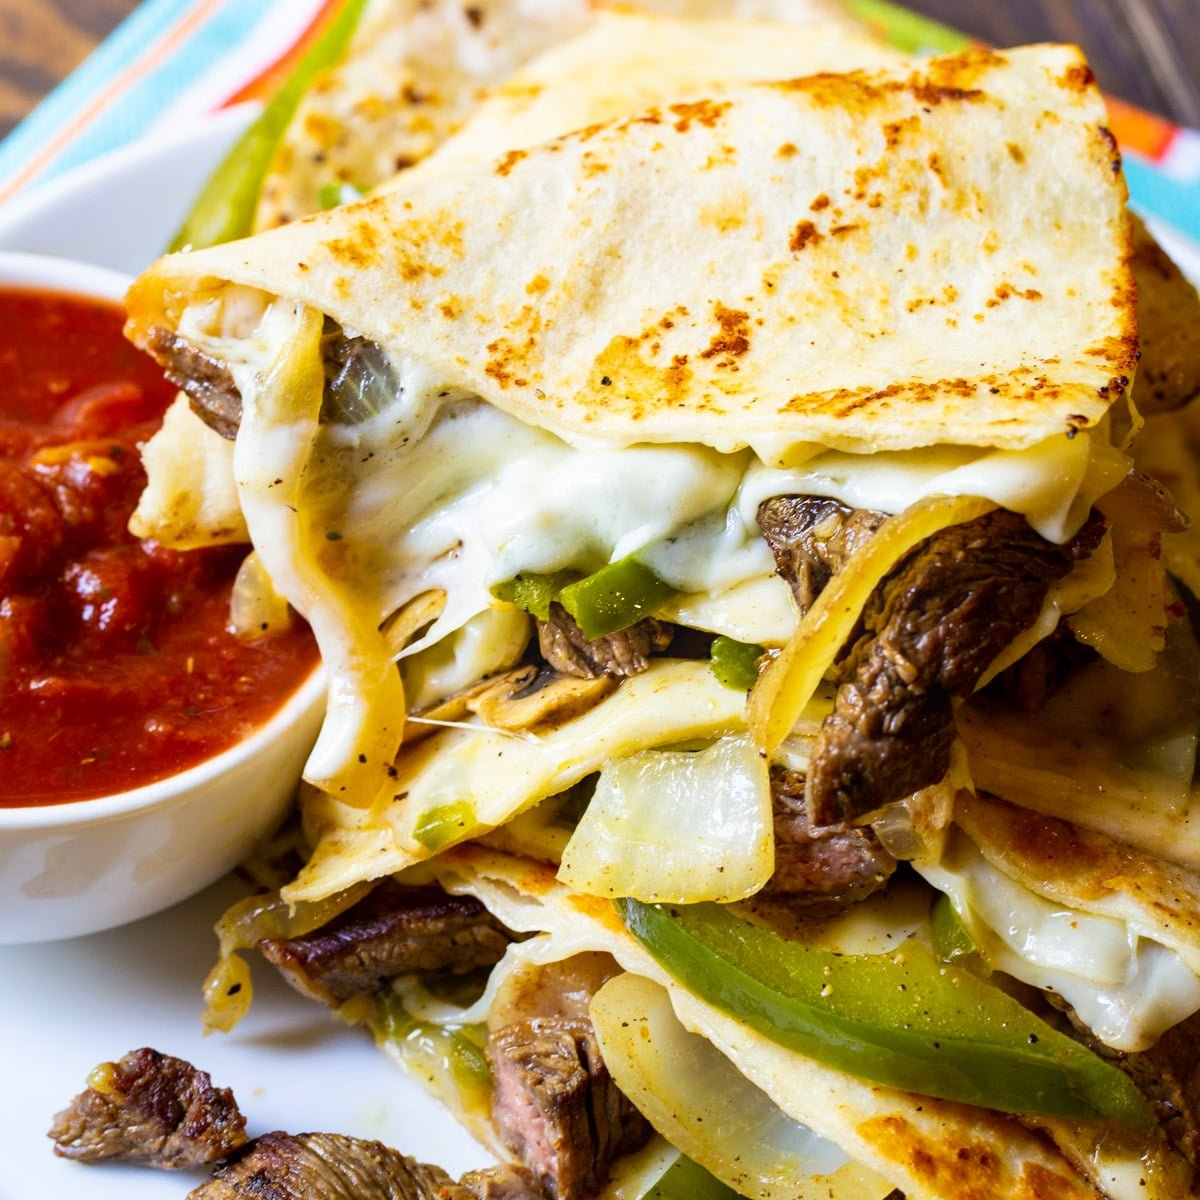 Trinagles of Philly Cheese Steak Quesadilla piled up on plate with bowl of salsa.